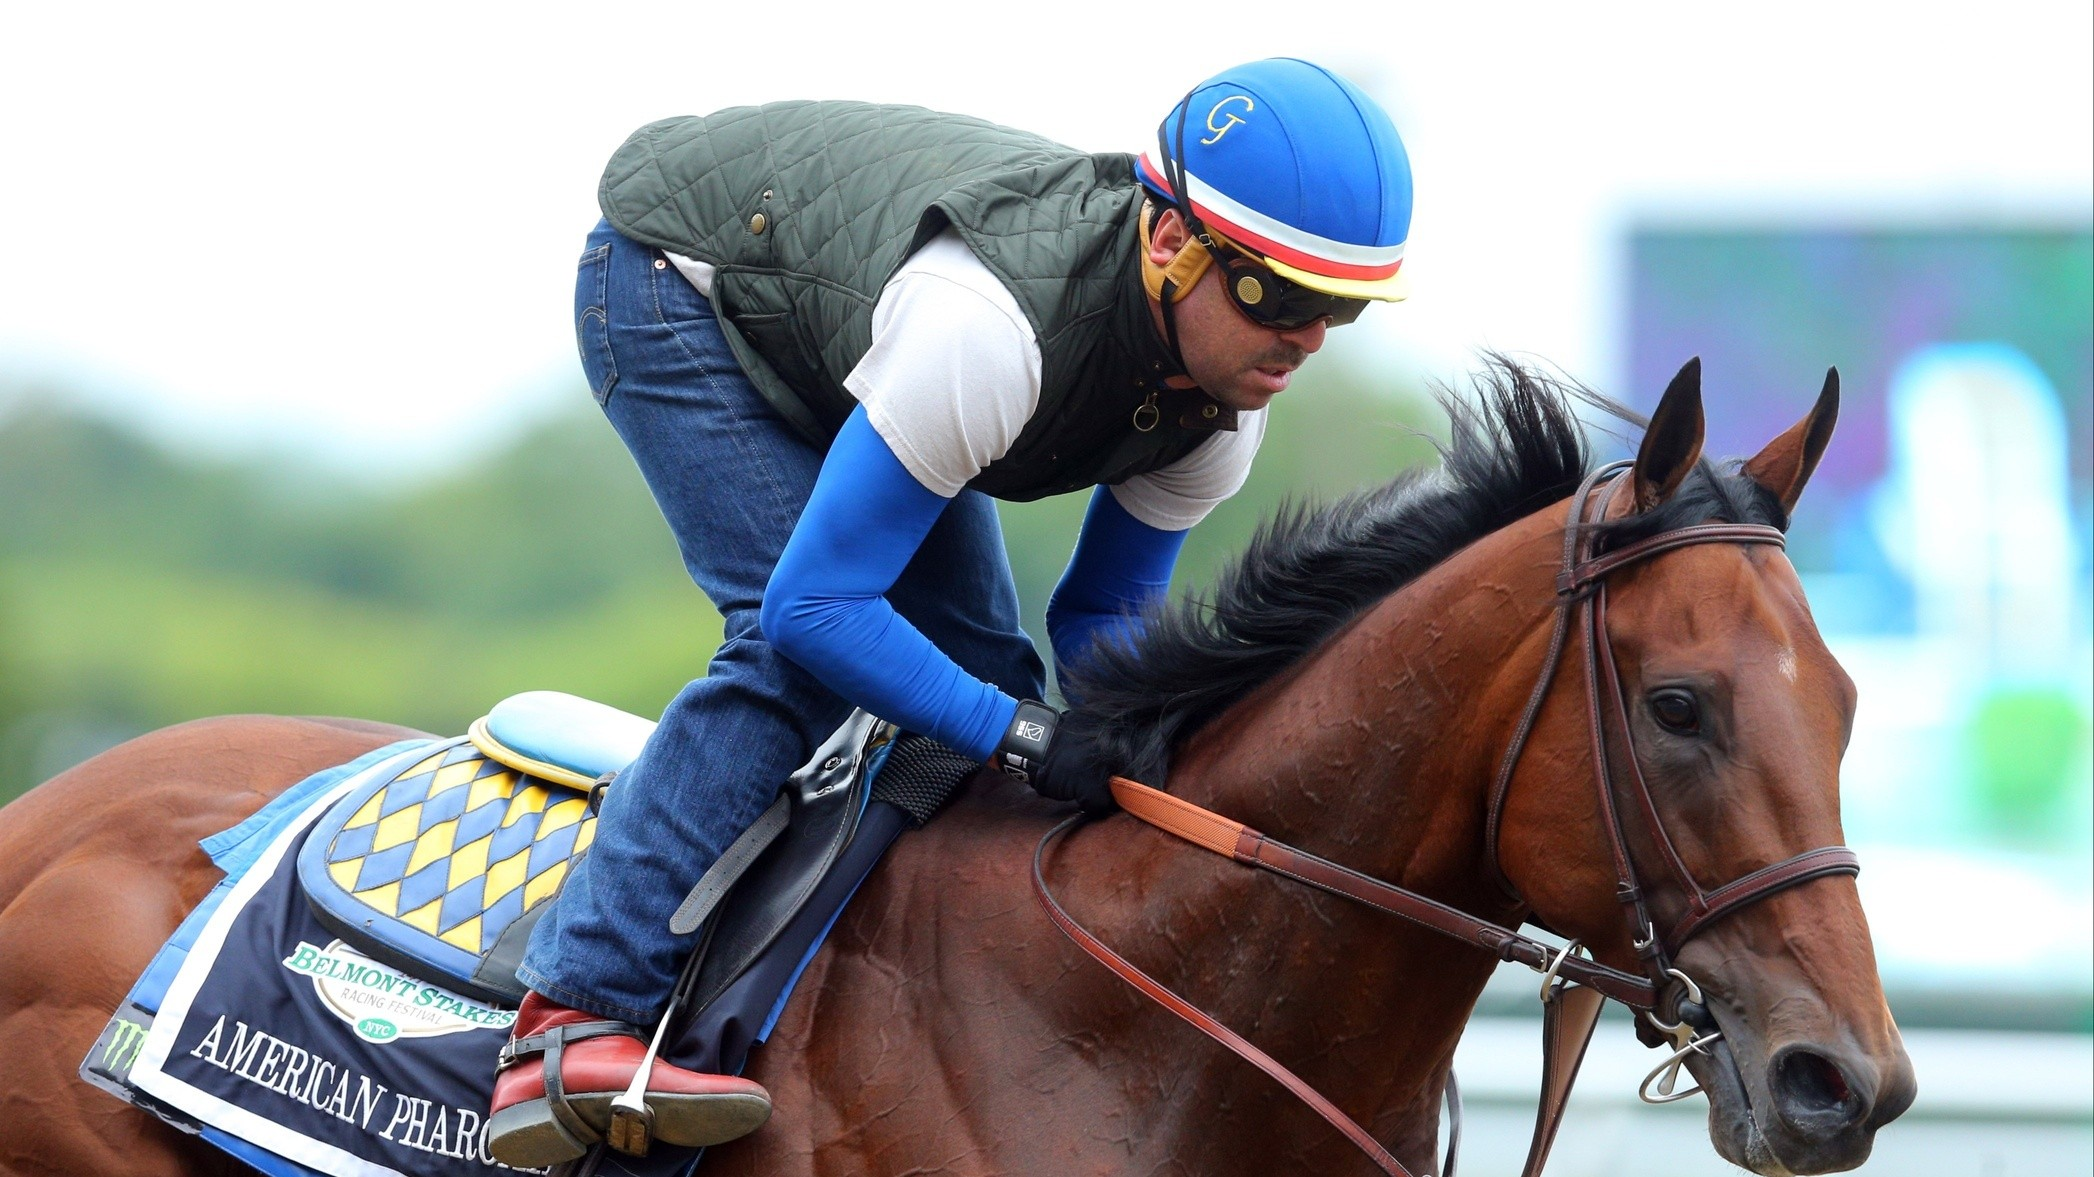 The Day American Pharoah Lost